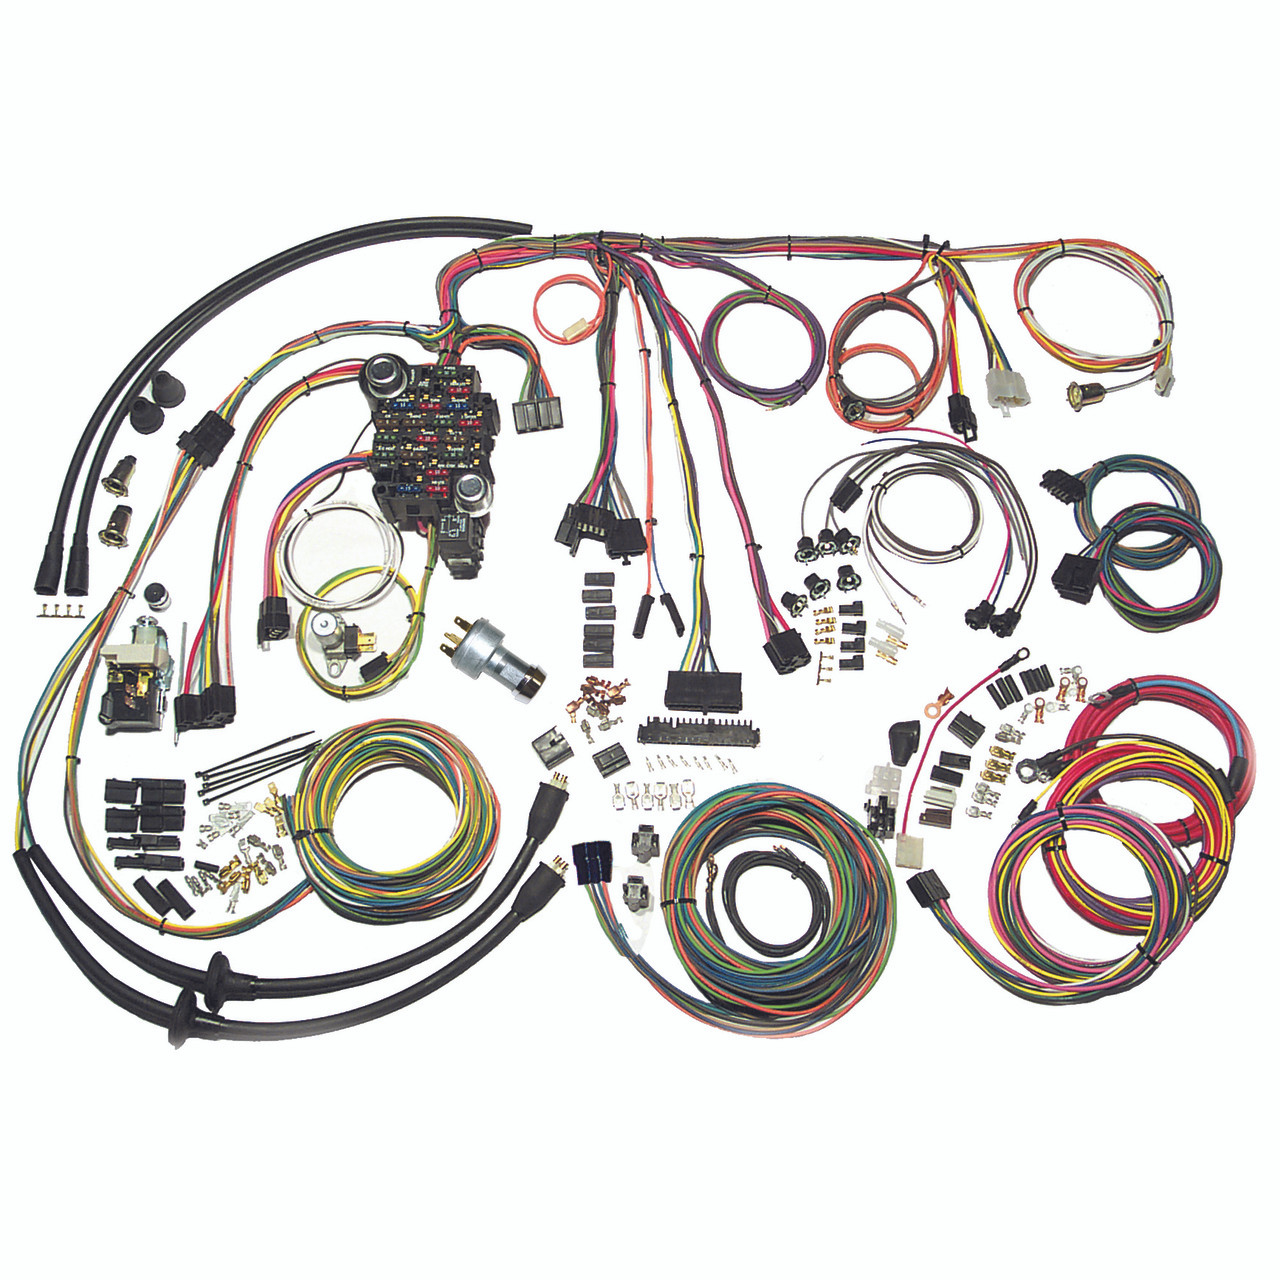 medium resolution of american autowire 1957 chevrolet car classic update complete wiring kit ame 500434